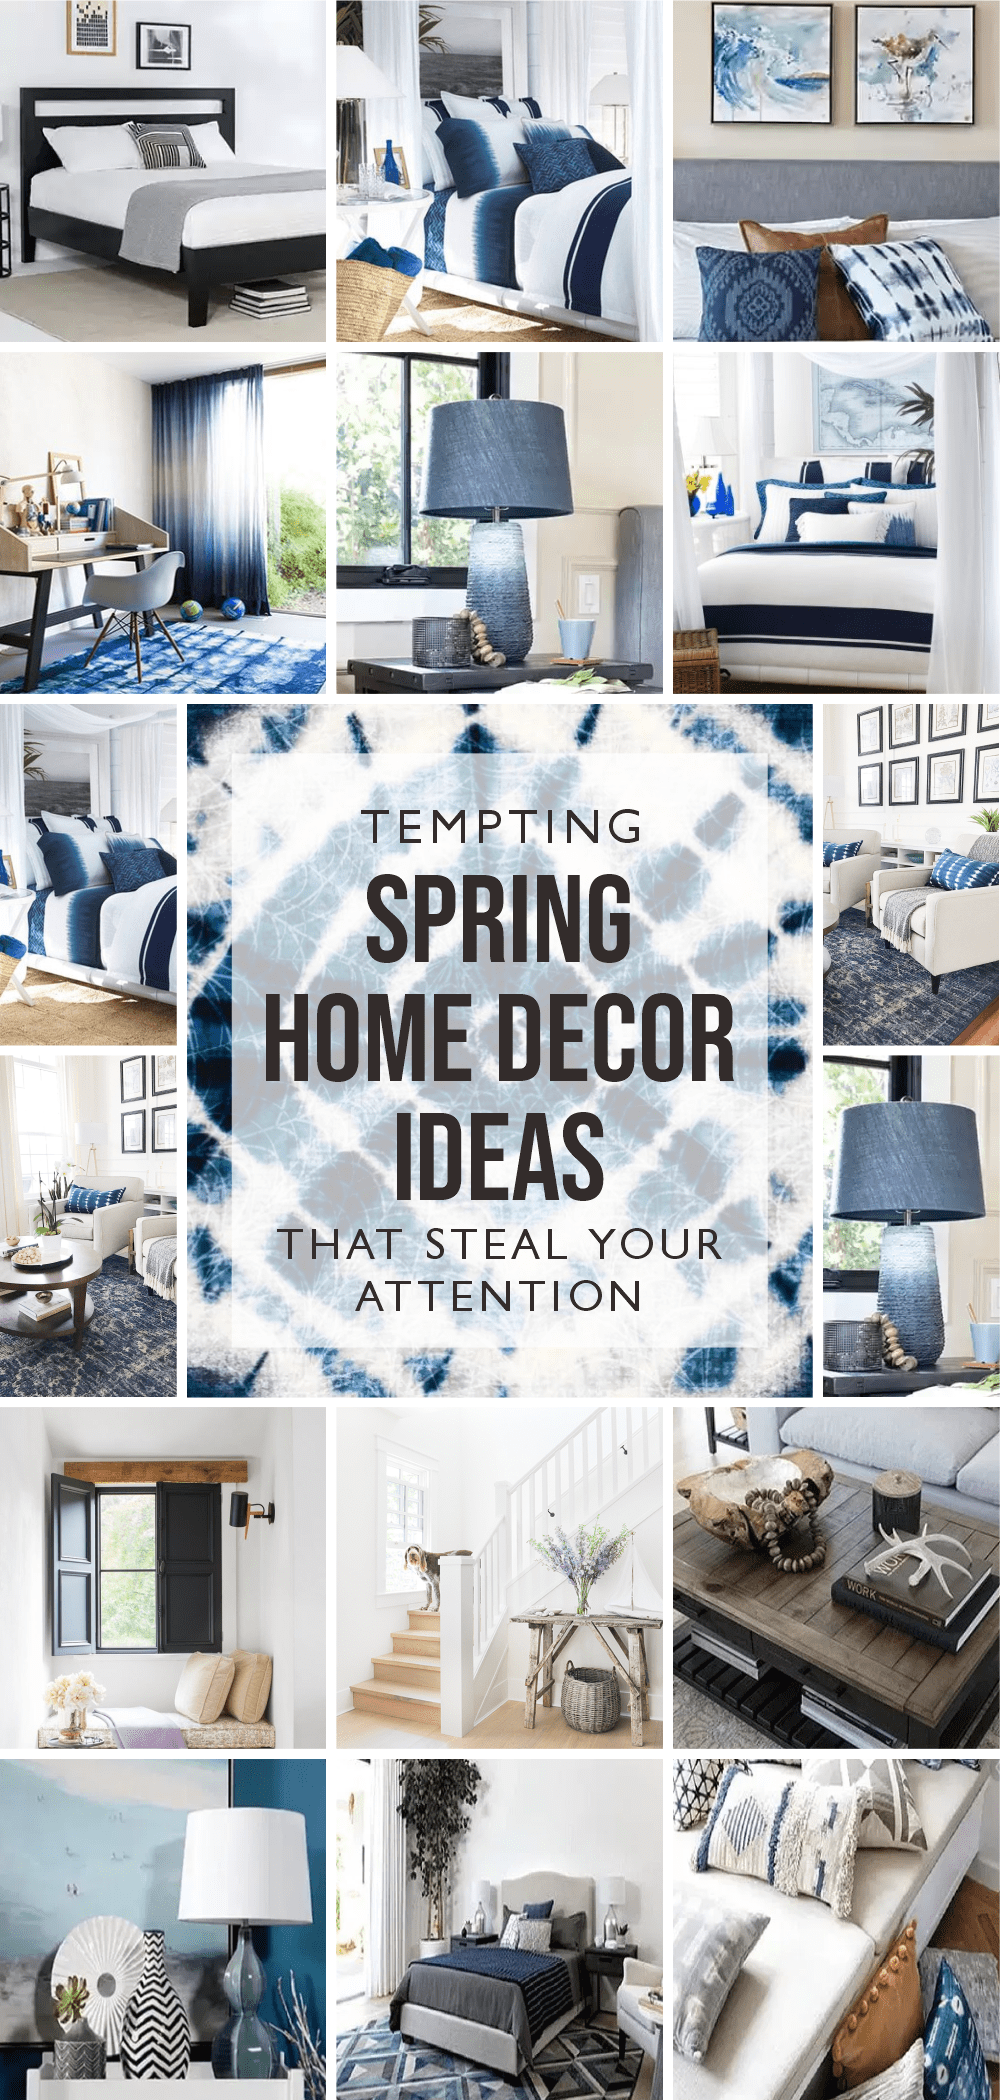 Tempting-spring-home-decor-ideas-that-steal-your-attention-1